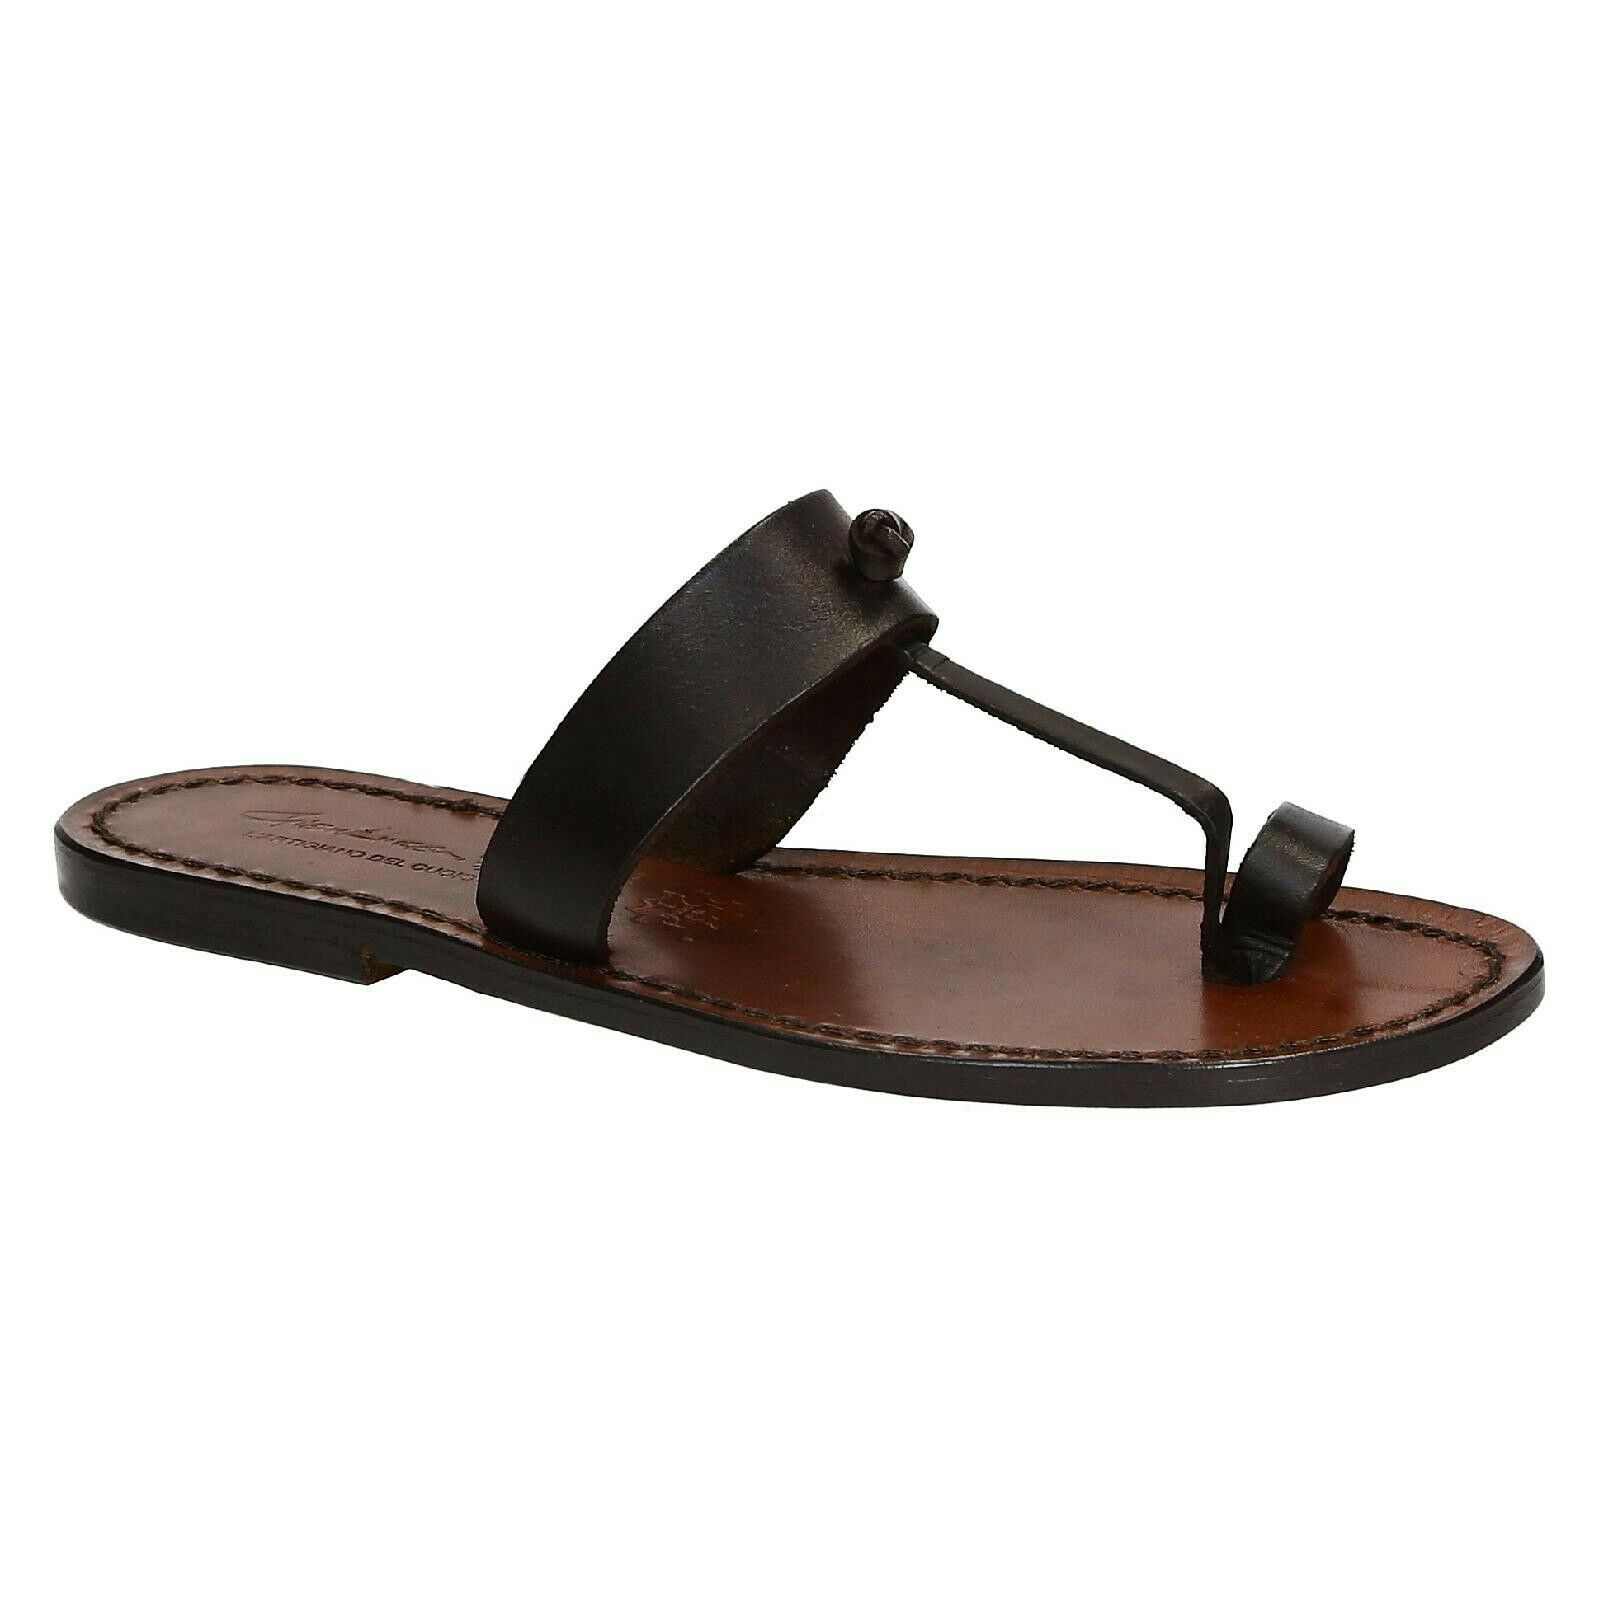 Handmade women thong slippers shoes flip flops dark brown leather Made in